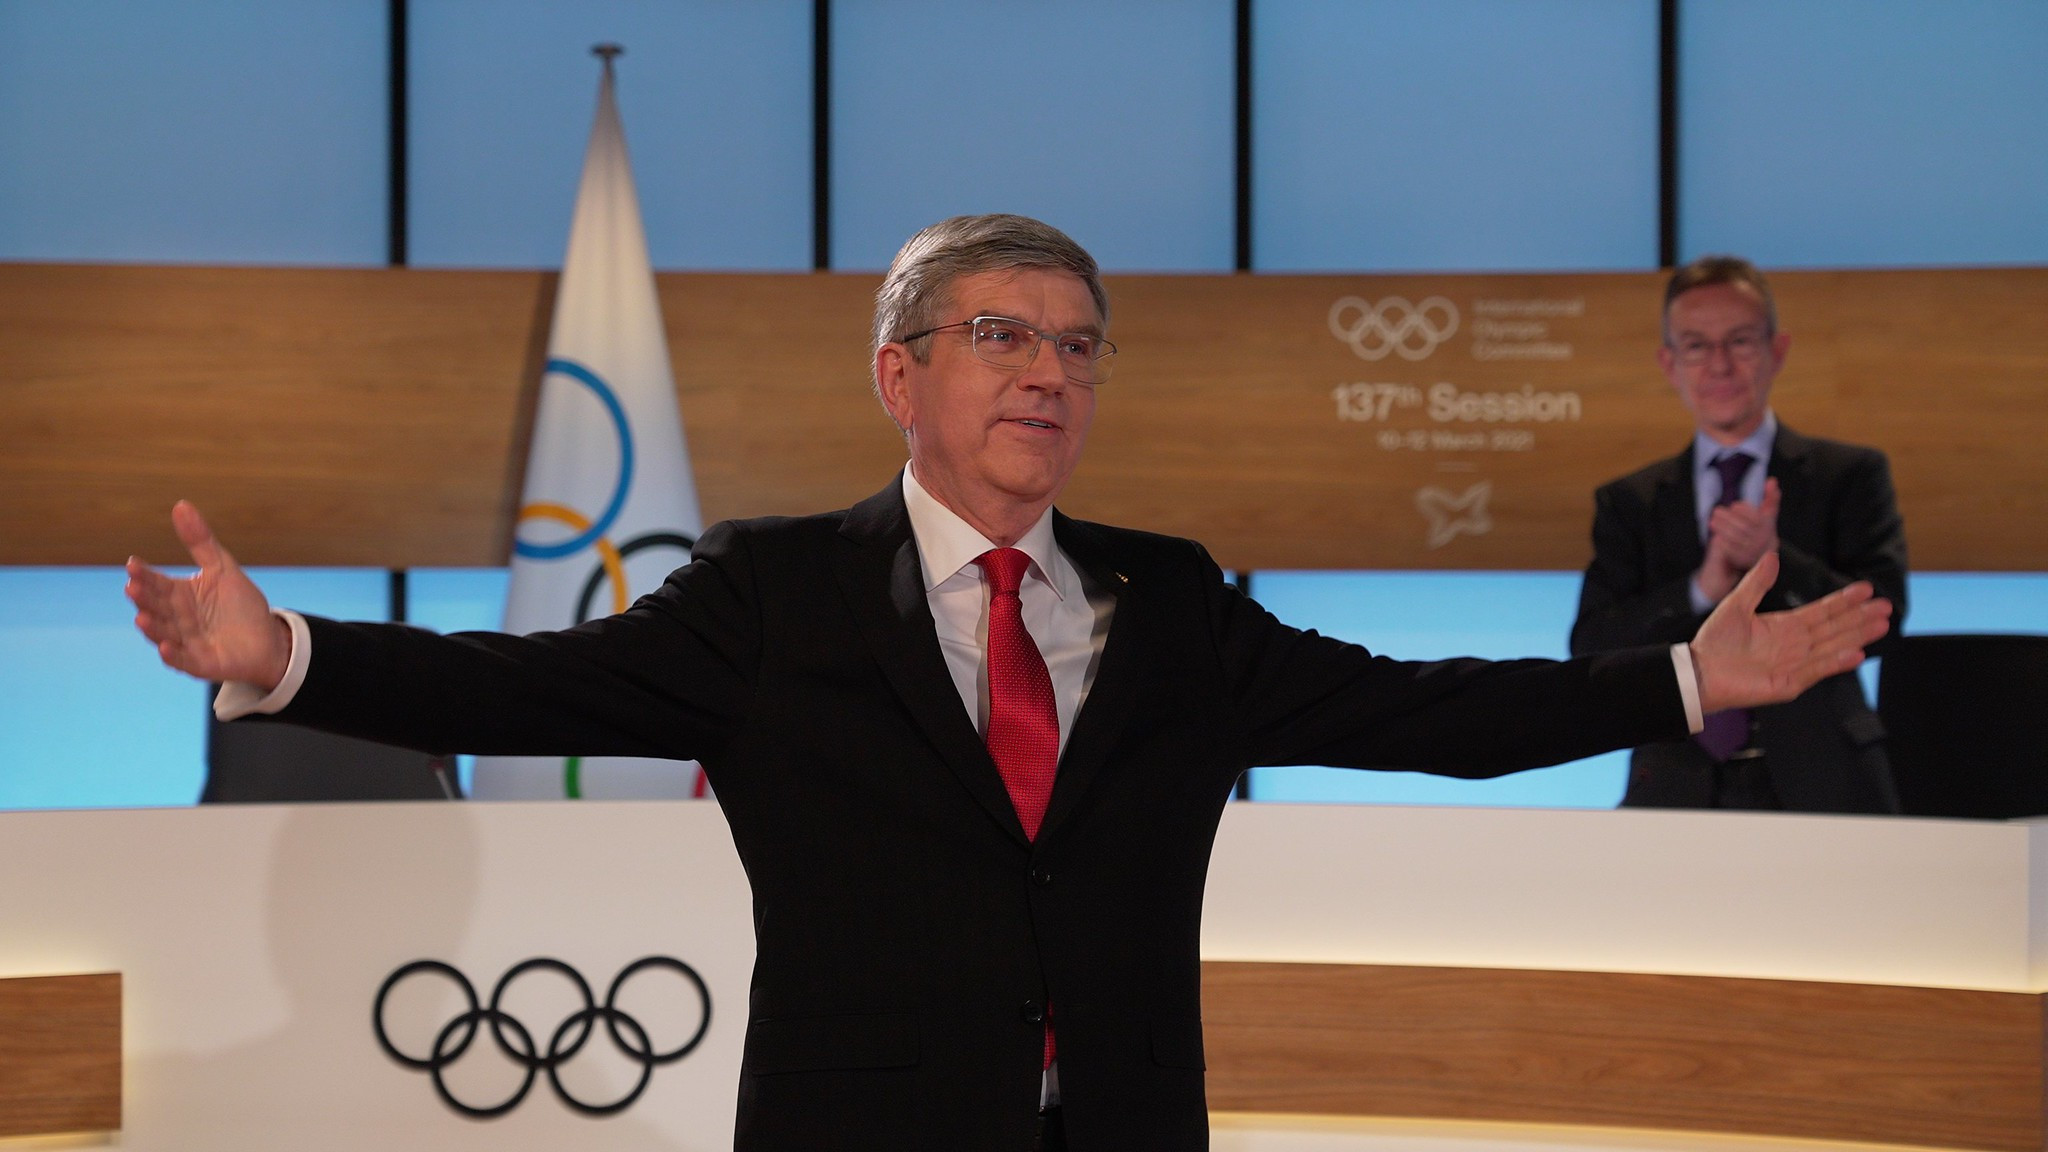 IOC President Thomas Bach was today re-elected President of the IOC ©IOC